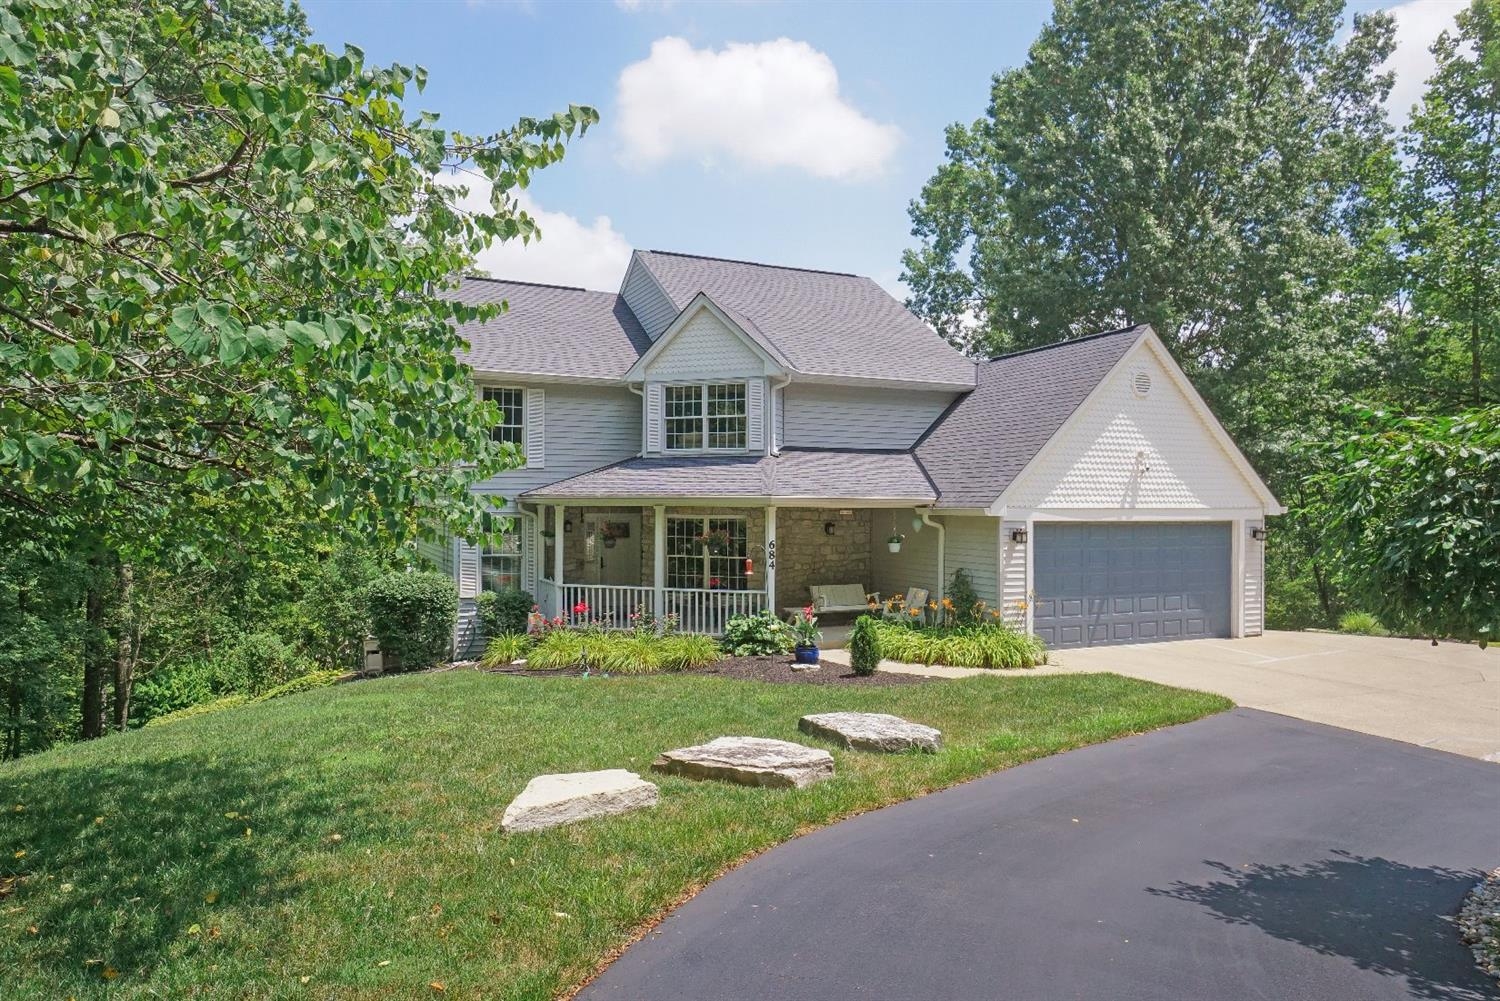 684 Brandy Wy Union Twp. (Clermont), OH